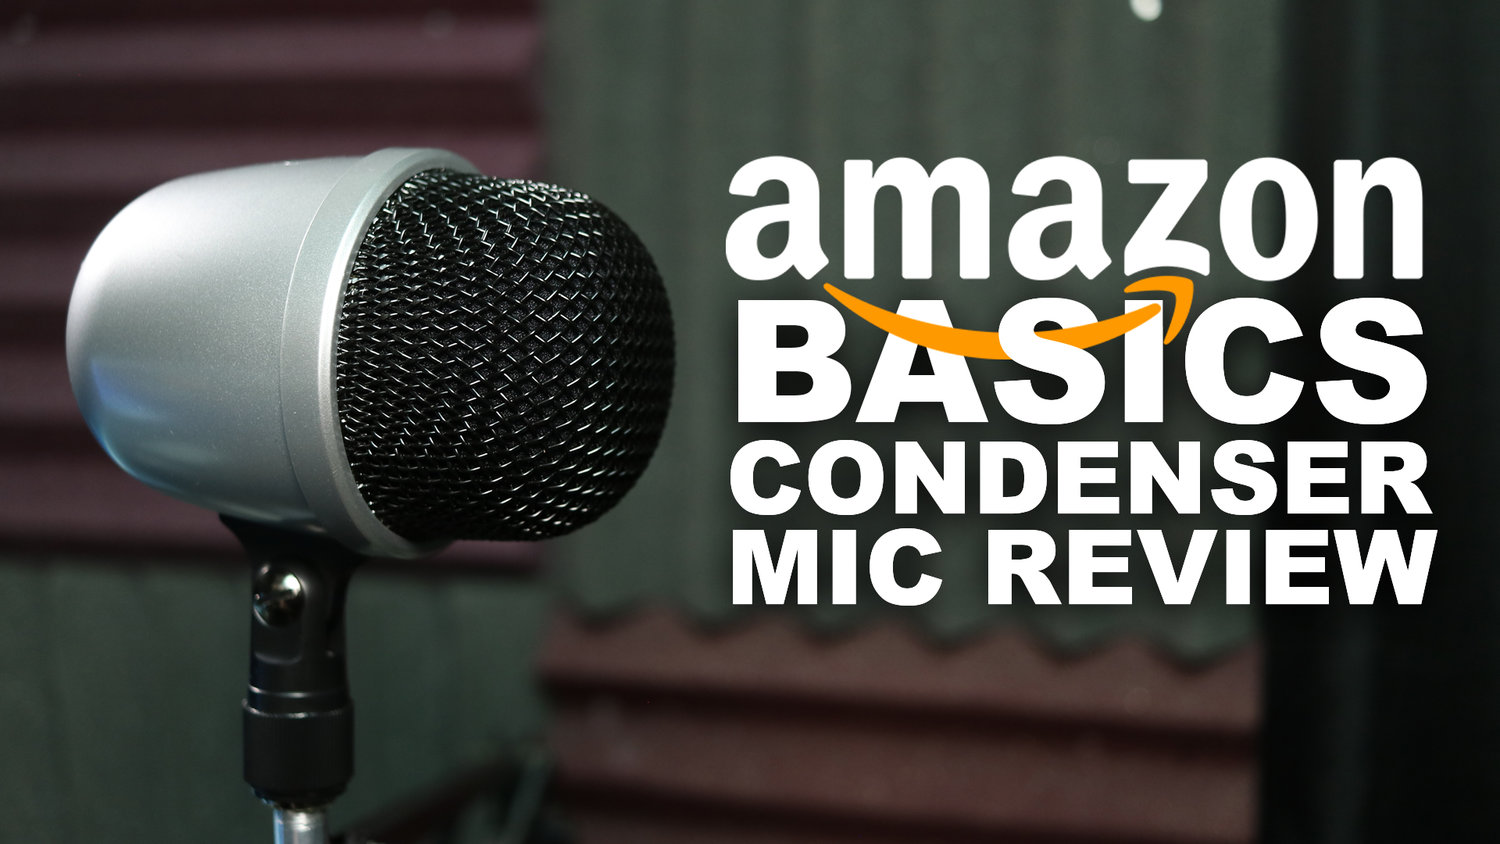 AmazonBasics Desktop Mini Condenser Microphone Review / Test — Geeks